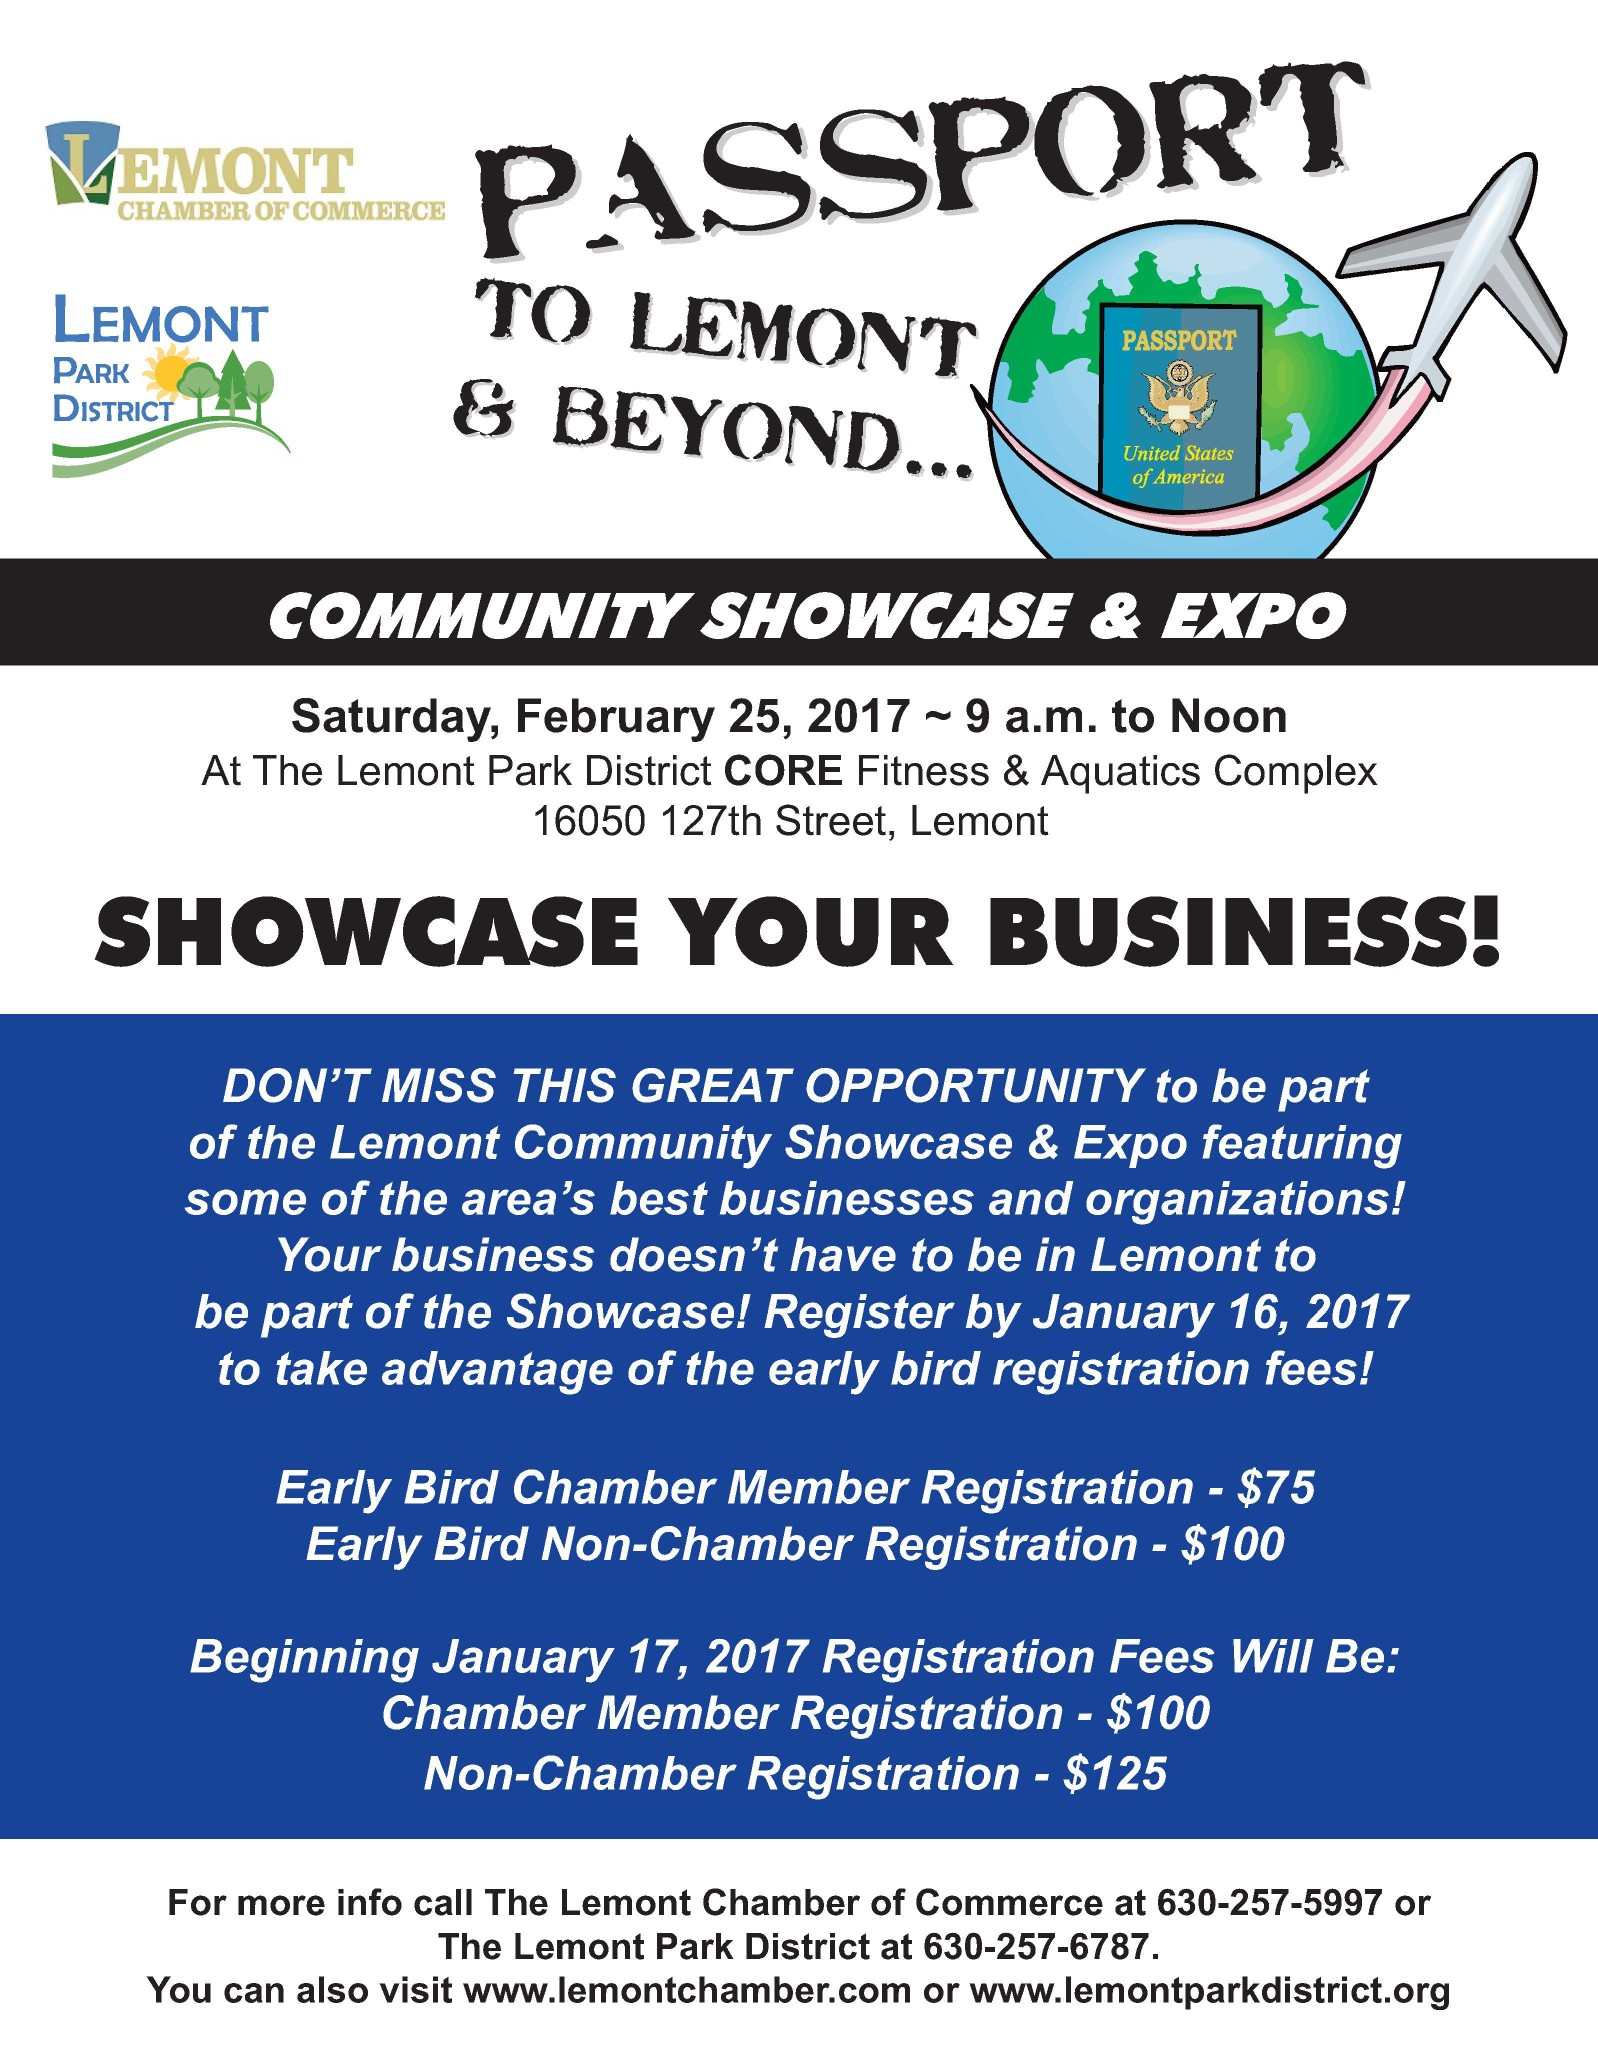 Lemont-Community-Showcase-Vendor-Flyer-2017-w1598.jpg